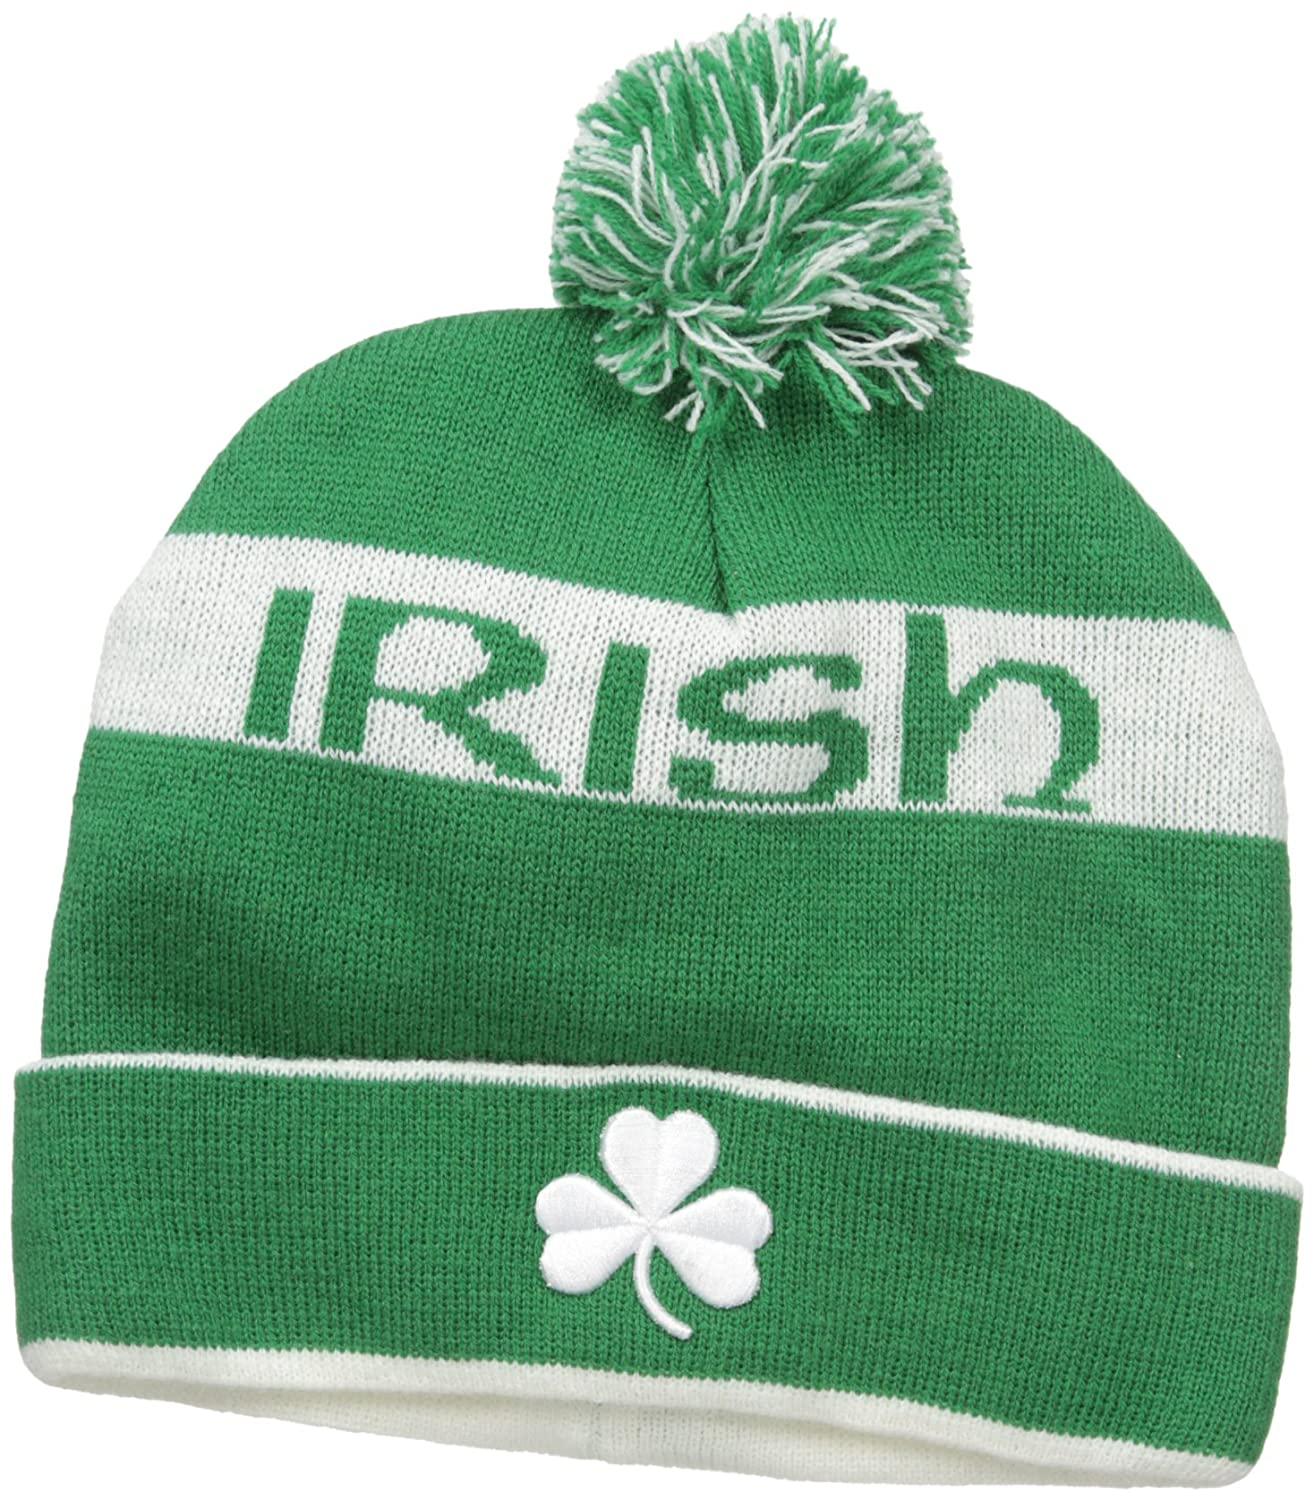 6f7f30b9158 Amazon.com   Ireland Pom Pom Knit Hat   Sports   Outdoors